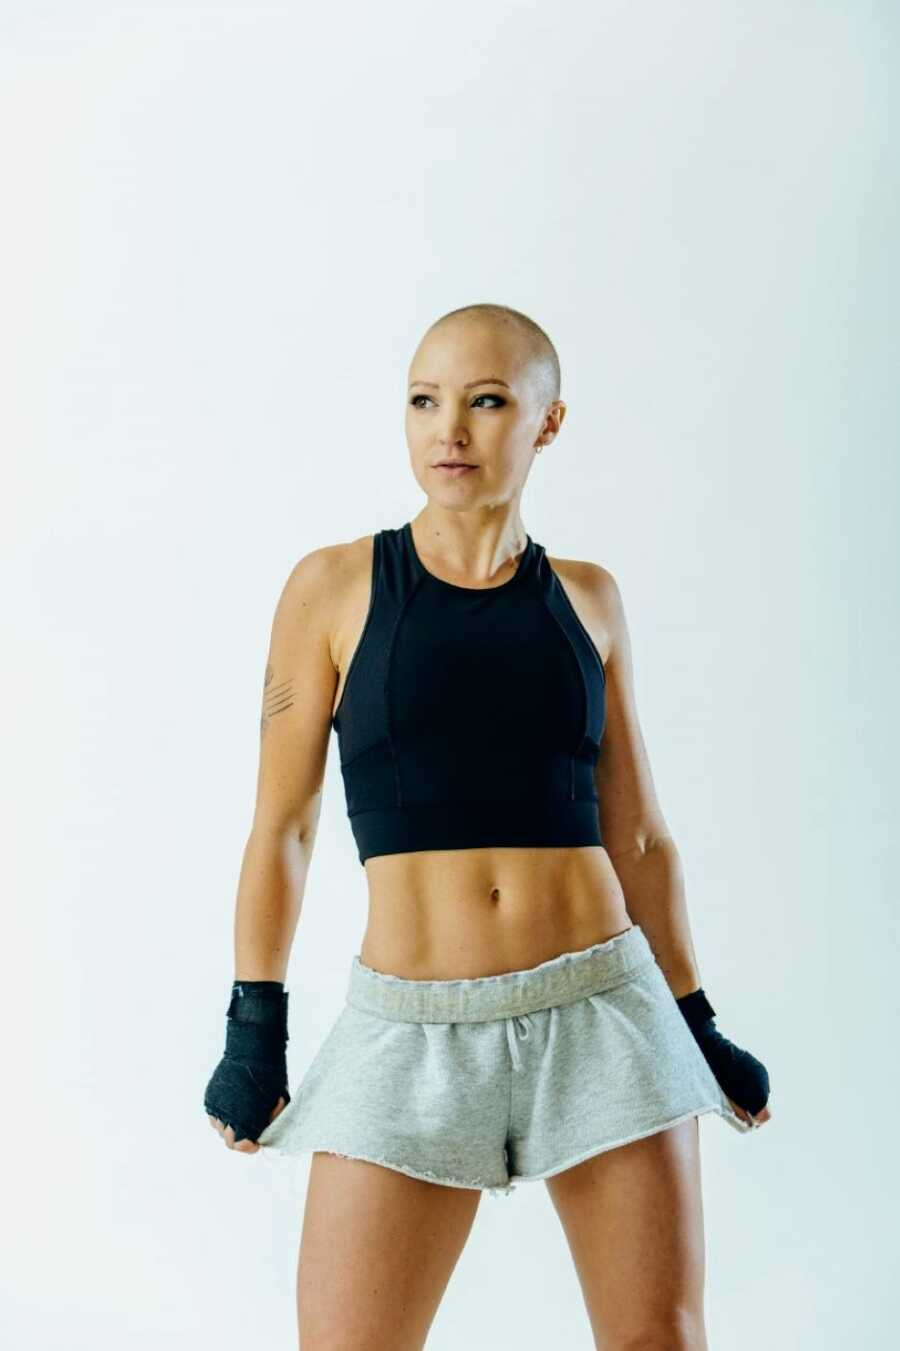 Fitness instructor battling breast cancer takes photos in workout gear, looking as strong as ever